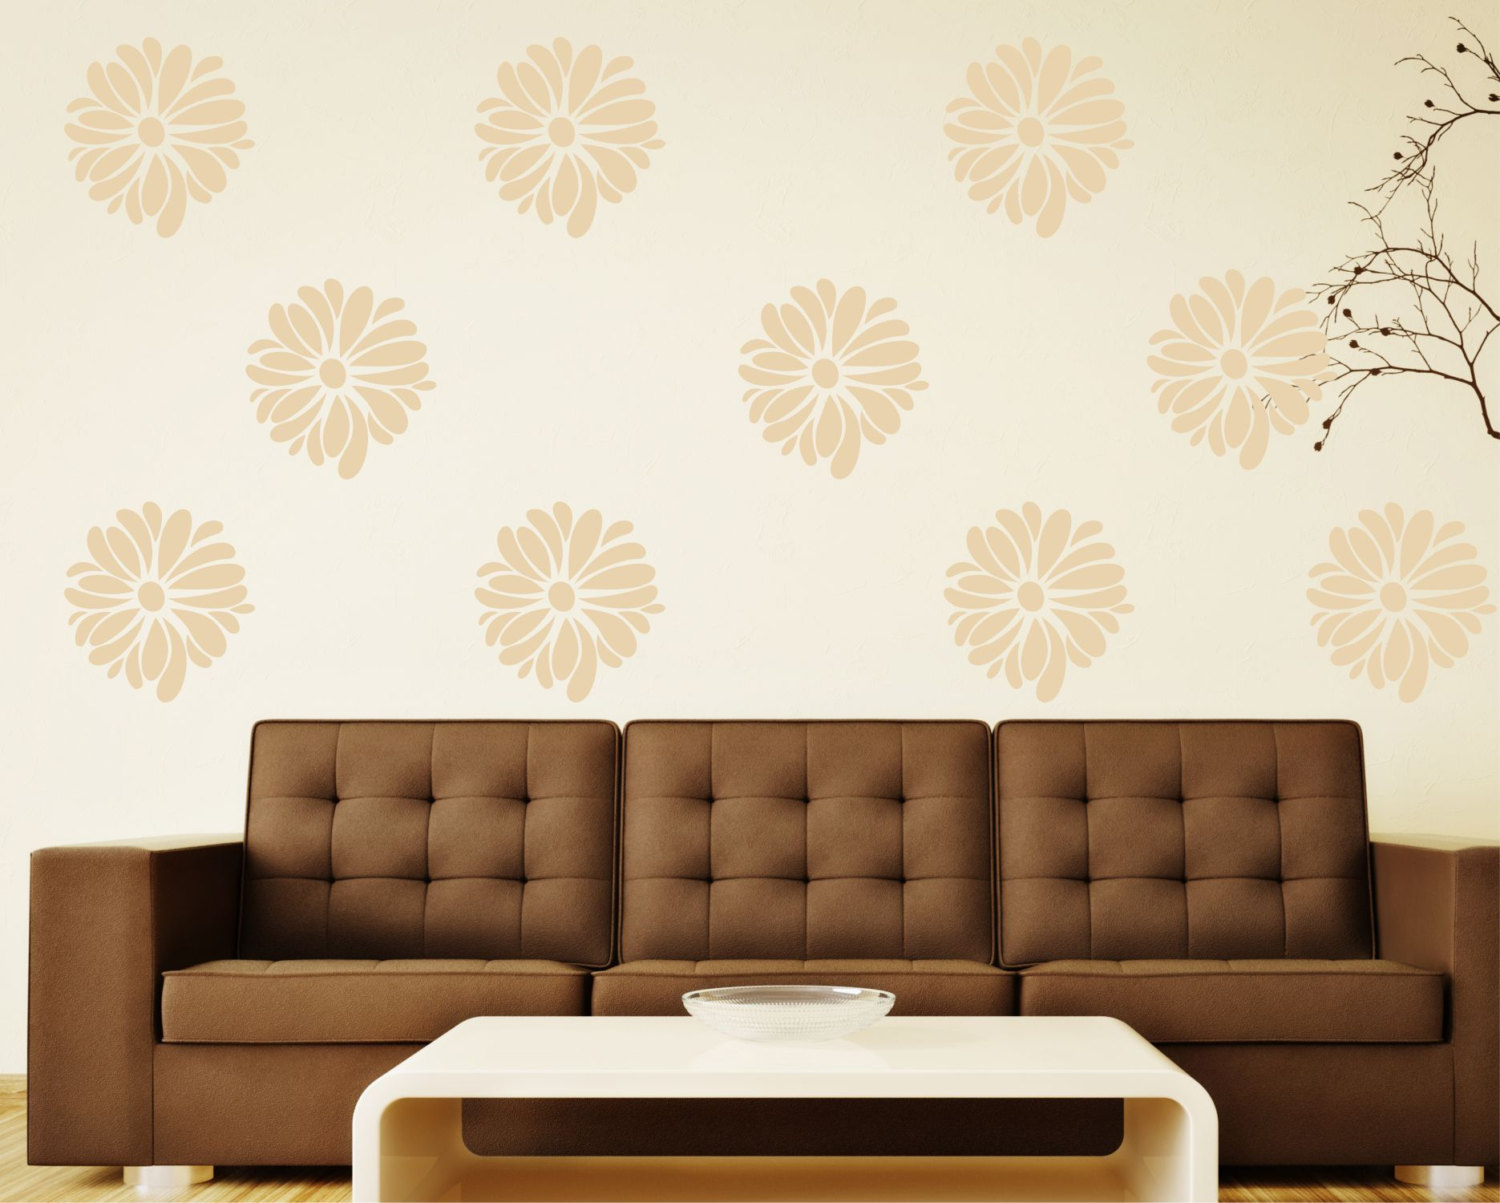 Marvelous Flower Wall Decals   Patterned Flower Great For Bedroom Or Living Room Wall  Art Decor